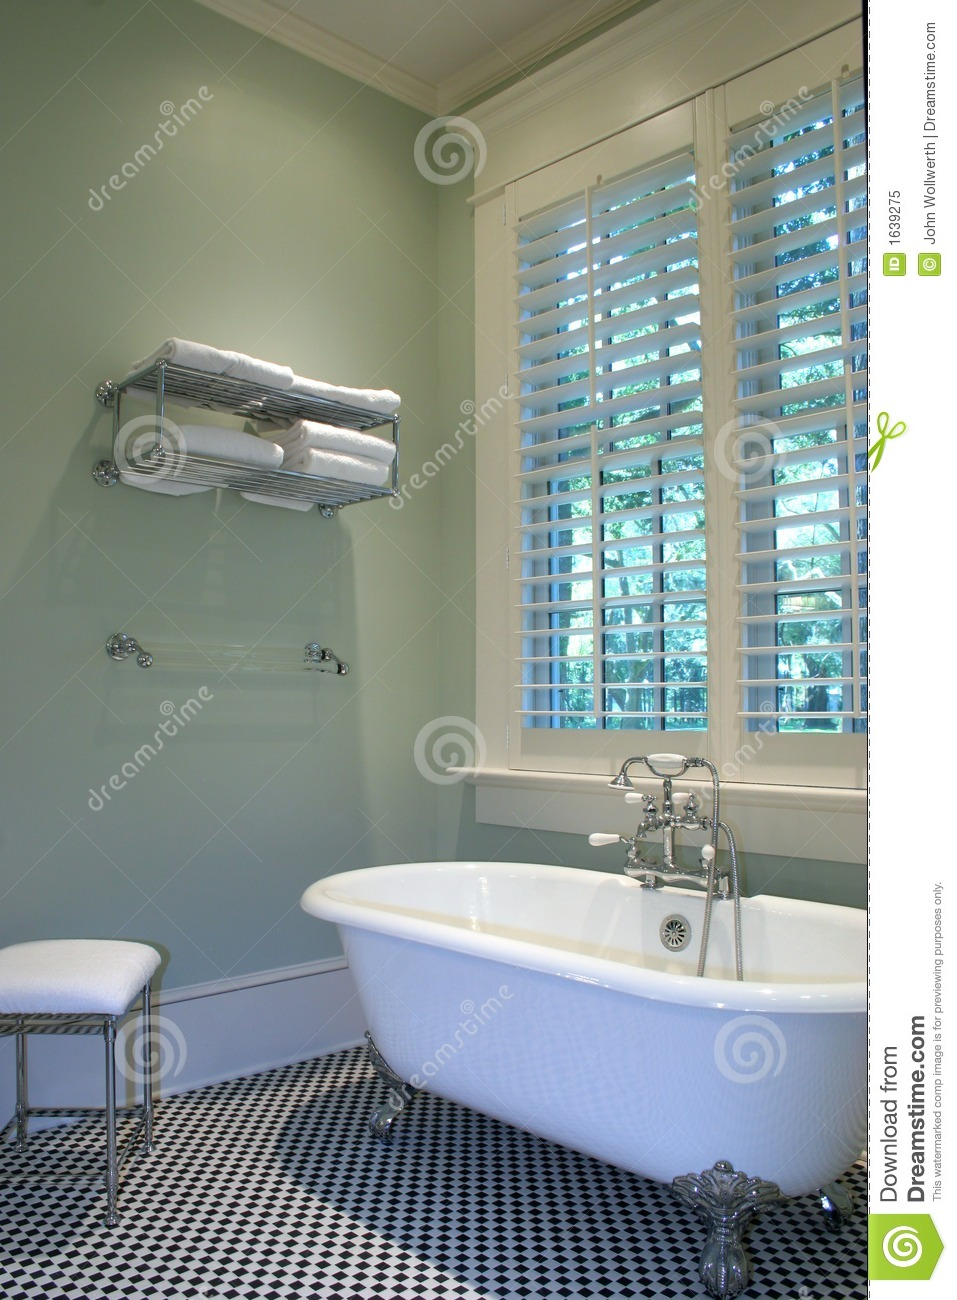 Retro Bathroom Royalty Free Stock Photo Image 1639275